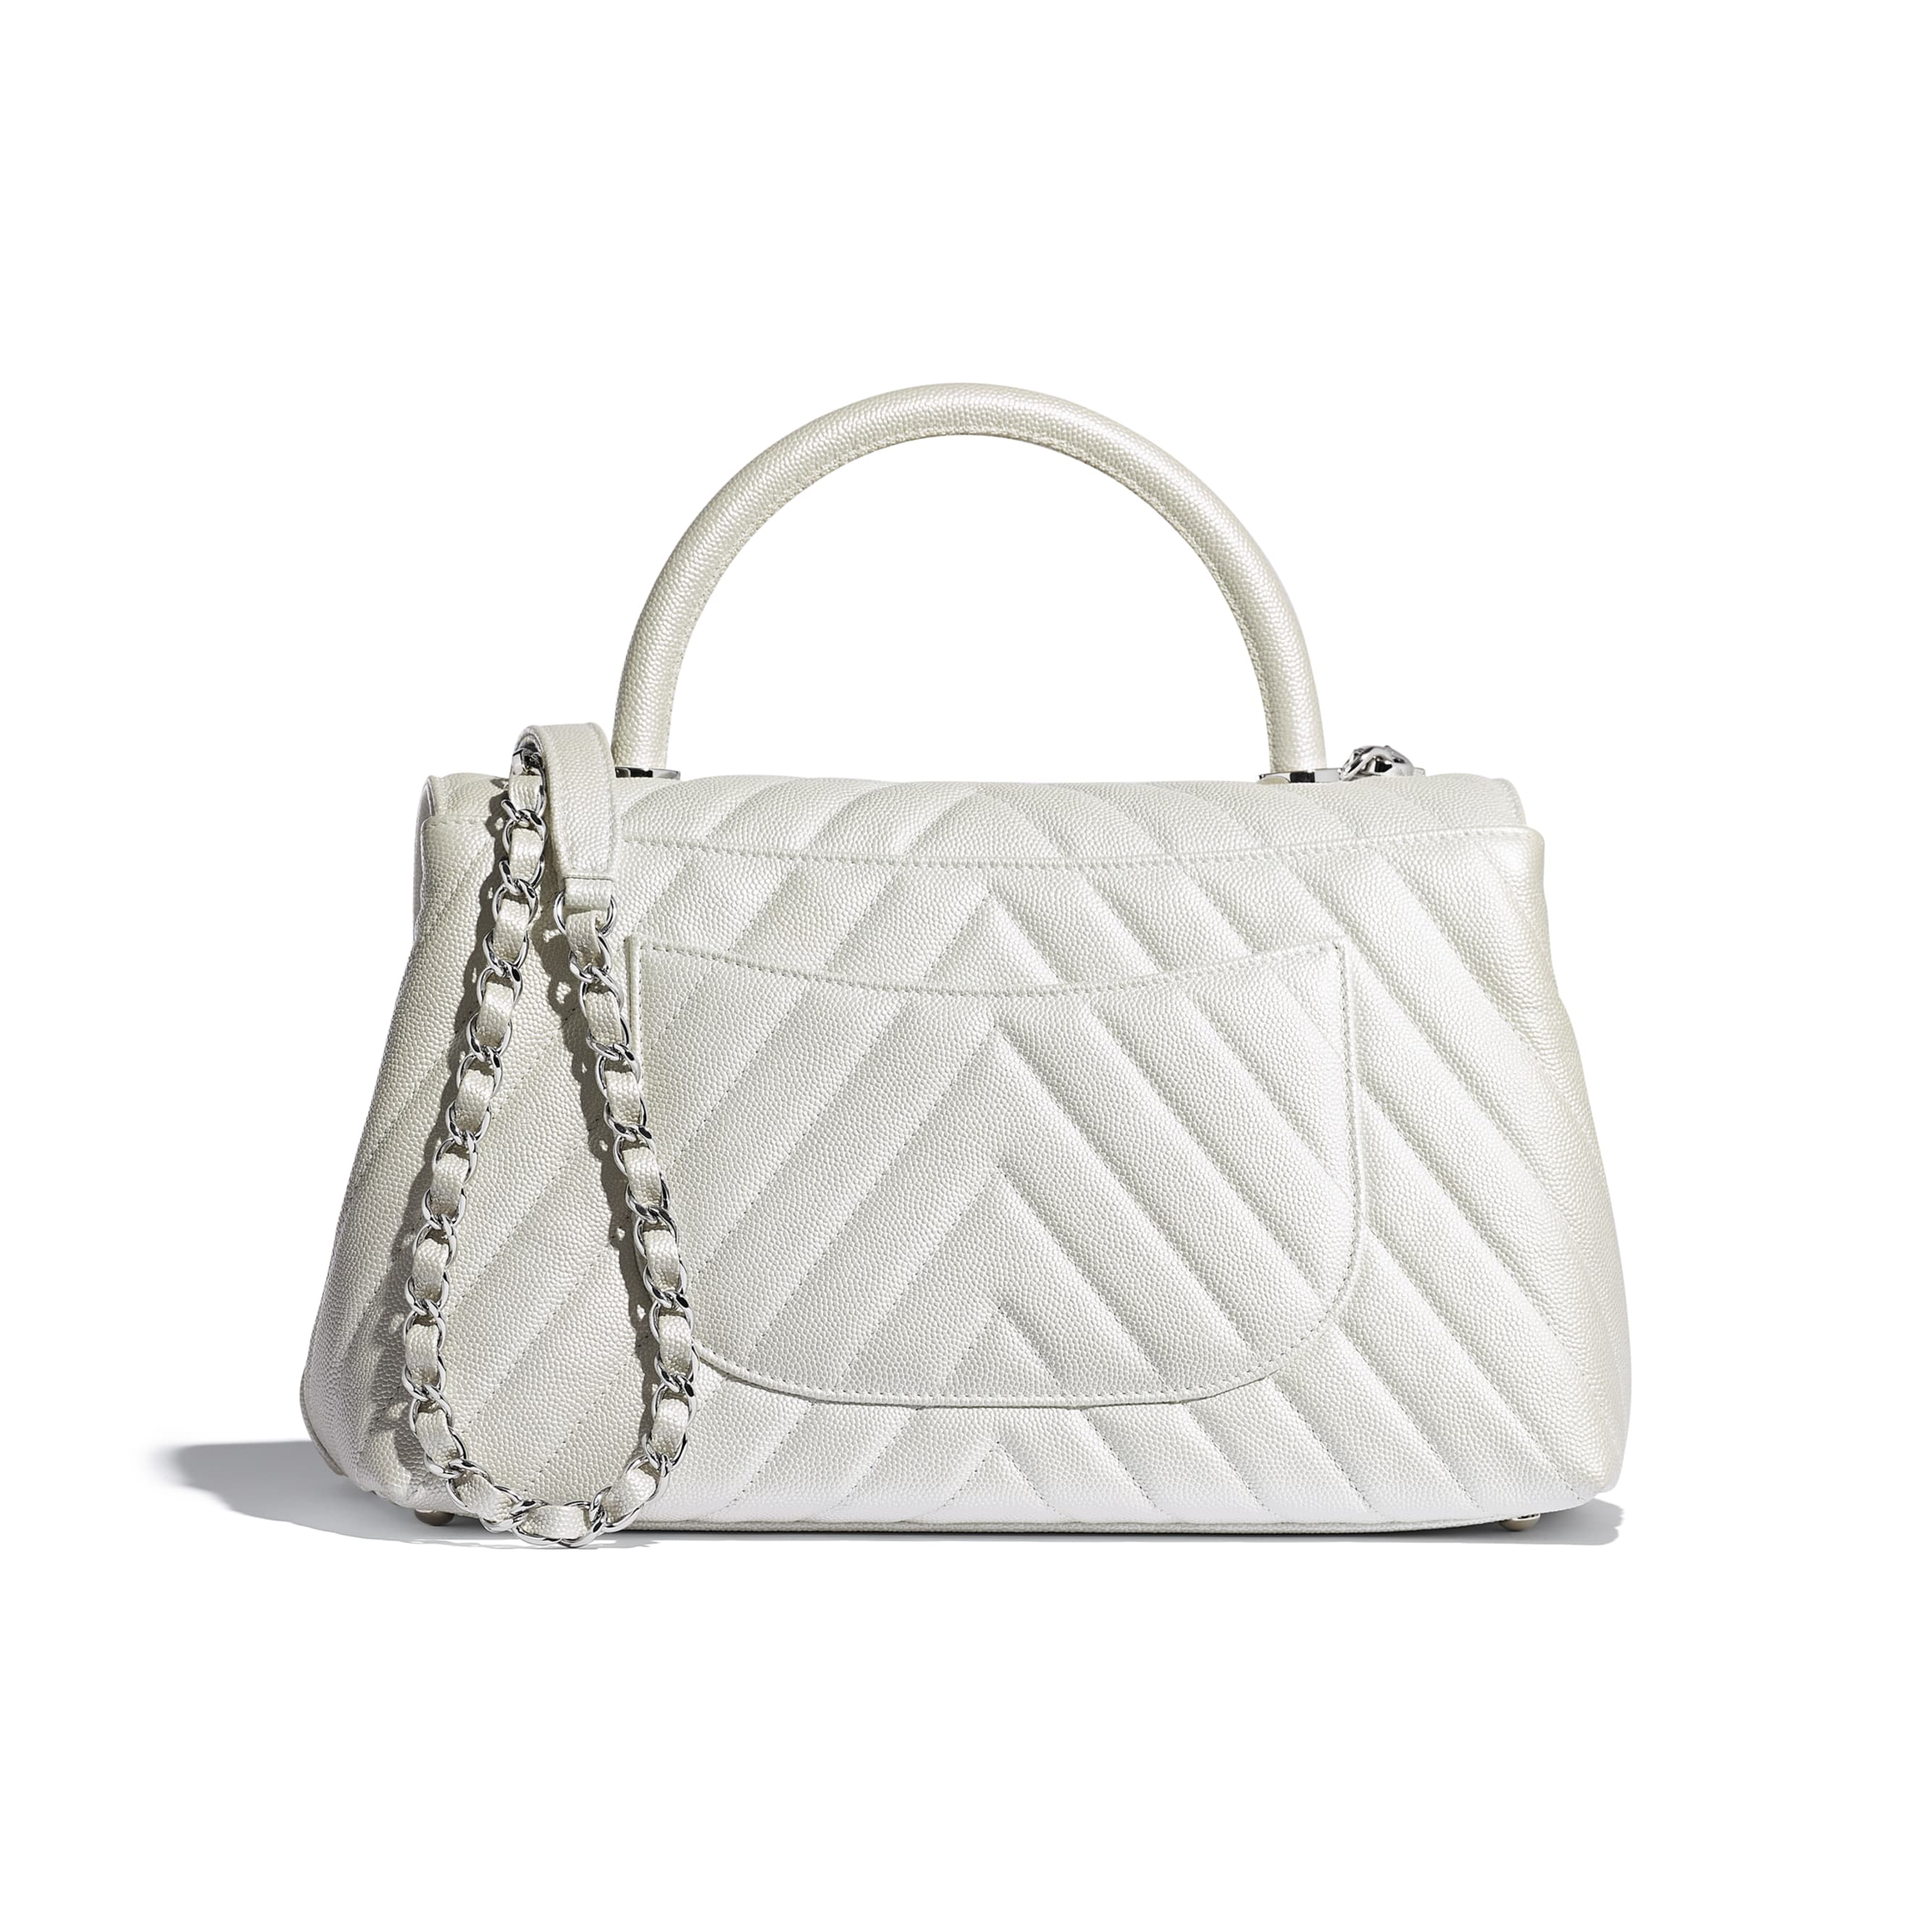 Flap Bag With Top Handle - White - Iridescent Grained Calfskin & Silver-Tone Metal - Alternative view - see standard sized version